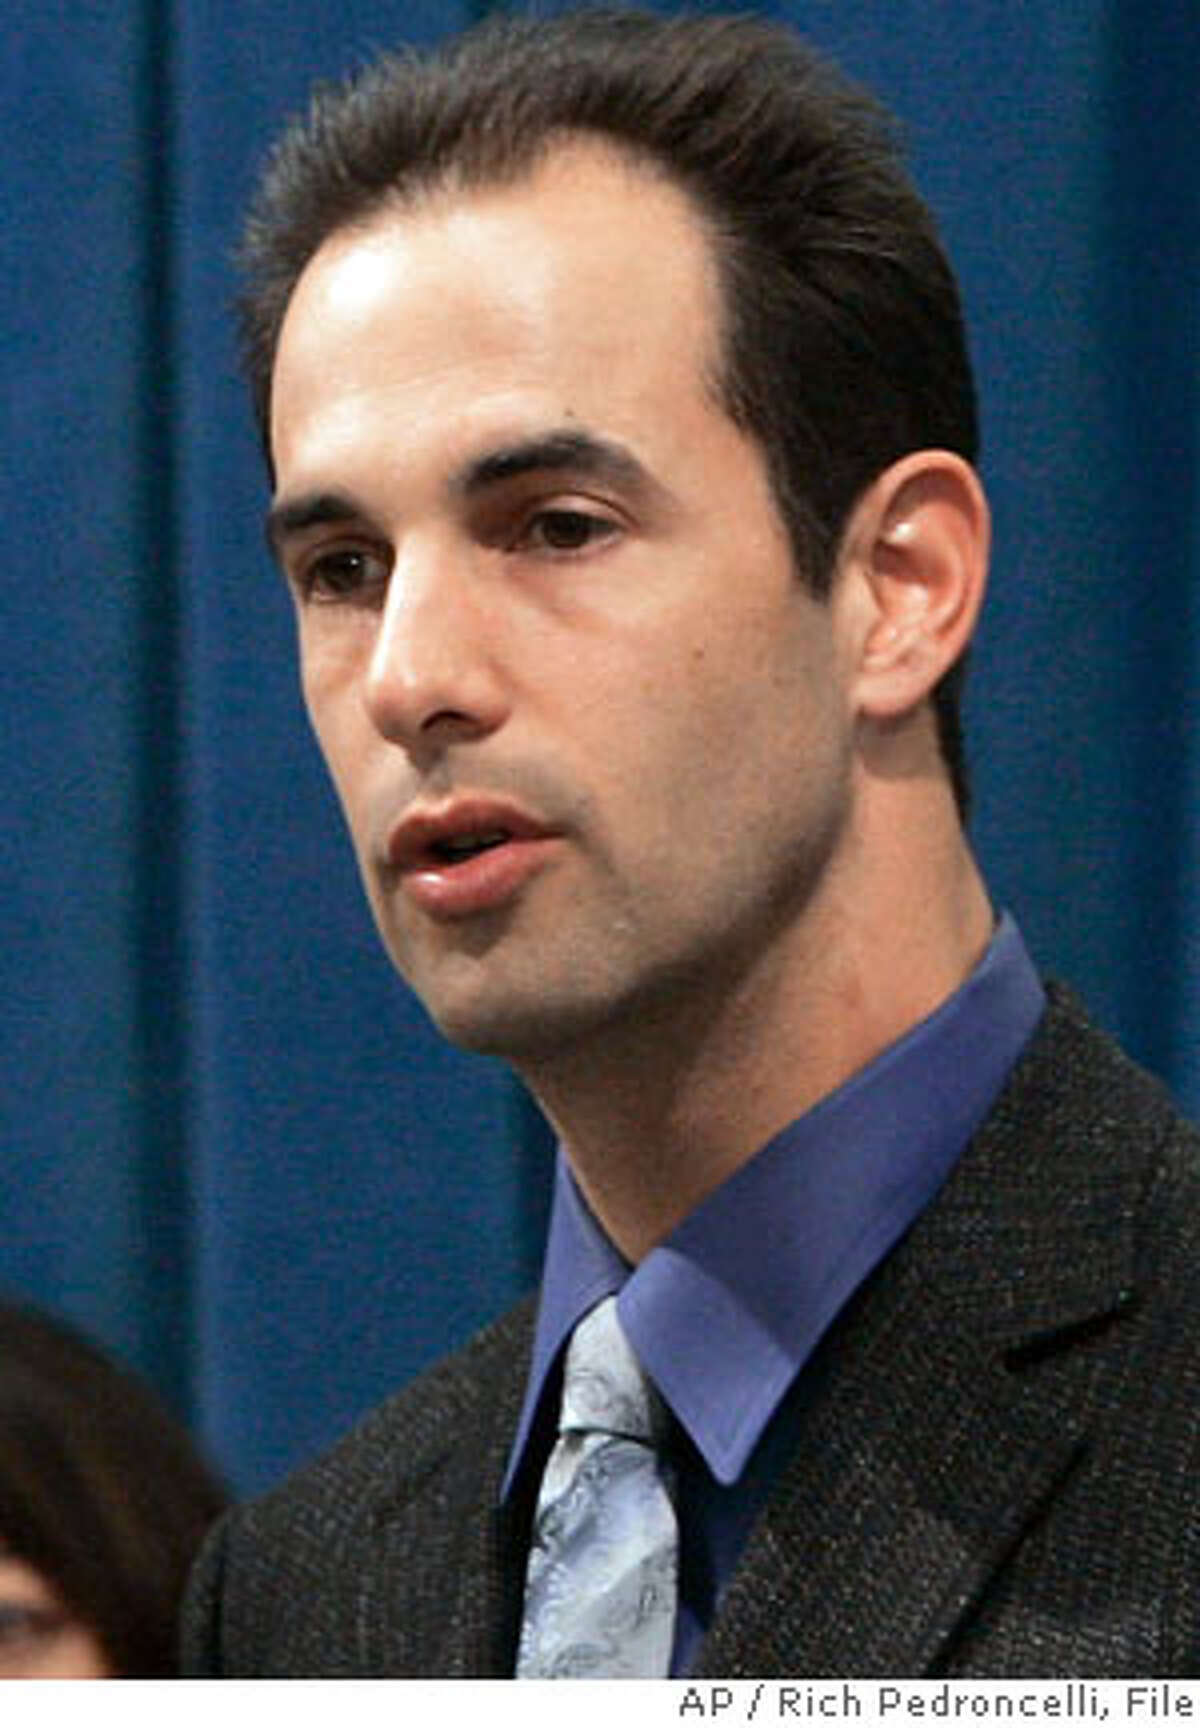 Assemblyman Lloyd Levine, D- Sherman Oaks, right, answers a question concerning the assisted suicide measure he and Assemblywoman Patti Berg, D-Eureka, left, introduced at a Capitol news conference in Sacramento, Calif., Thursday, Feb. 15, 2007. The bill is the third attempt by lawmakers to make California the second state in the country where doctors could give dying patients life-ending drugs. (AP Photo/Rich Pedroncelli)